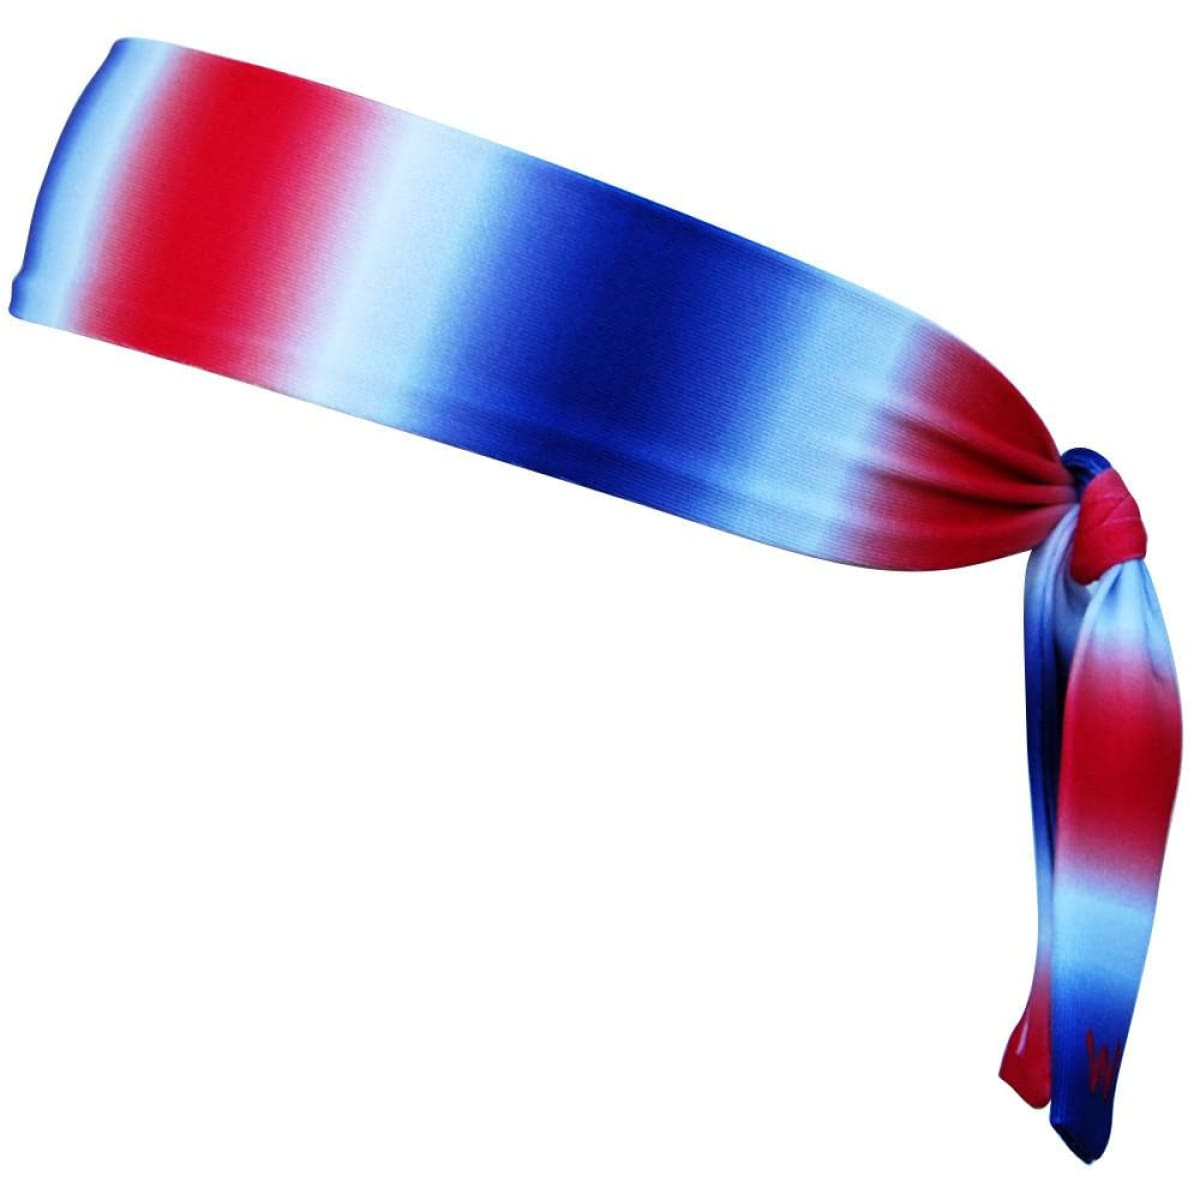 USA Ombre Red White Blue Elastic Tie Skinny 1 Headband - Wicked Headbands